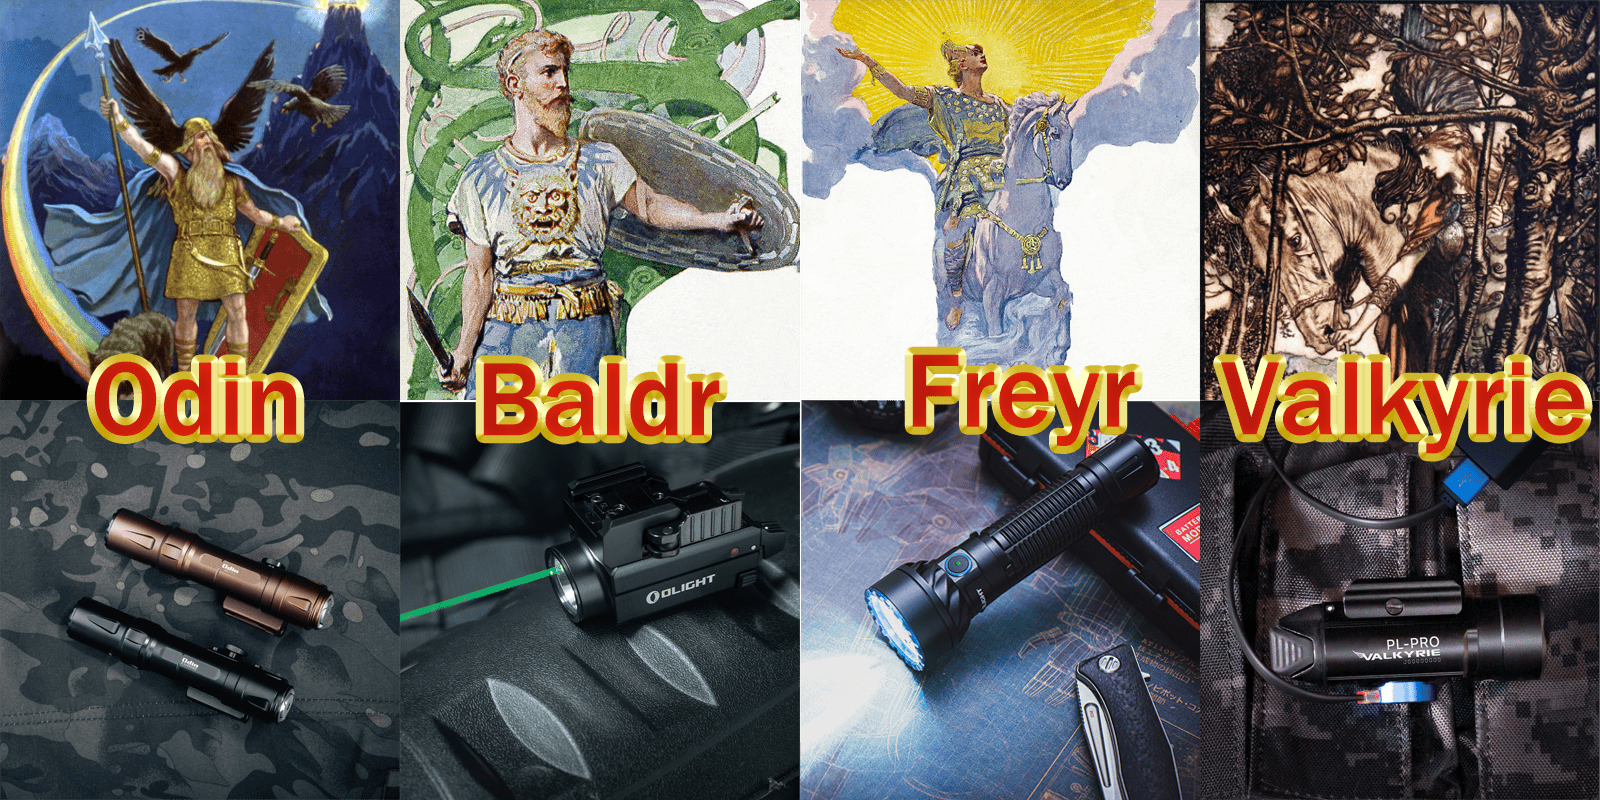 How Do Olight's Torch Names Relate To Norse Mythology?